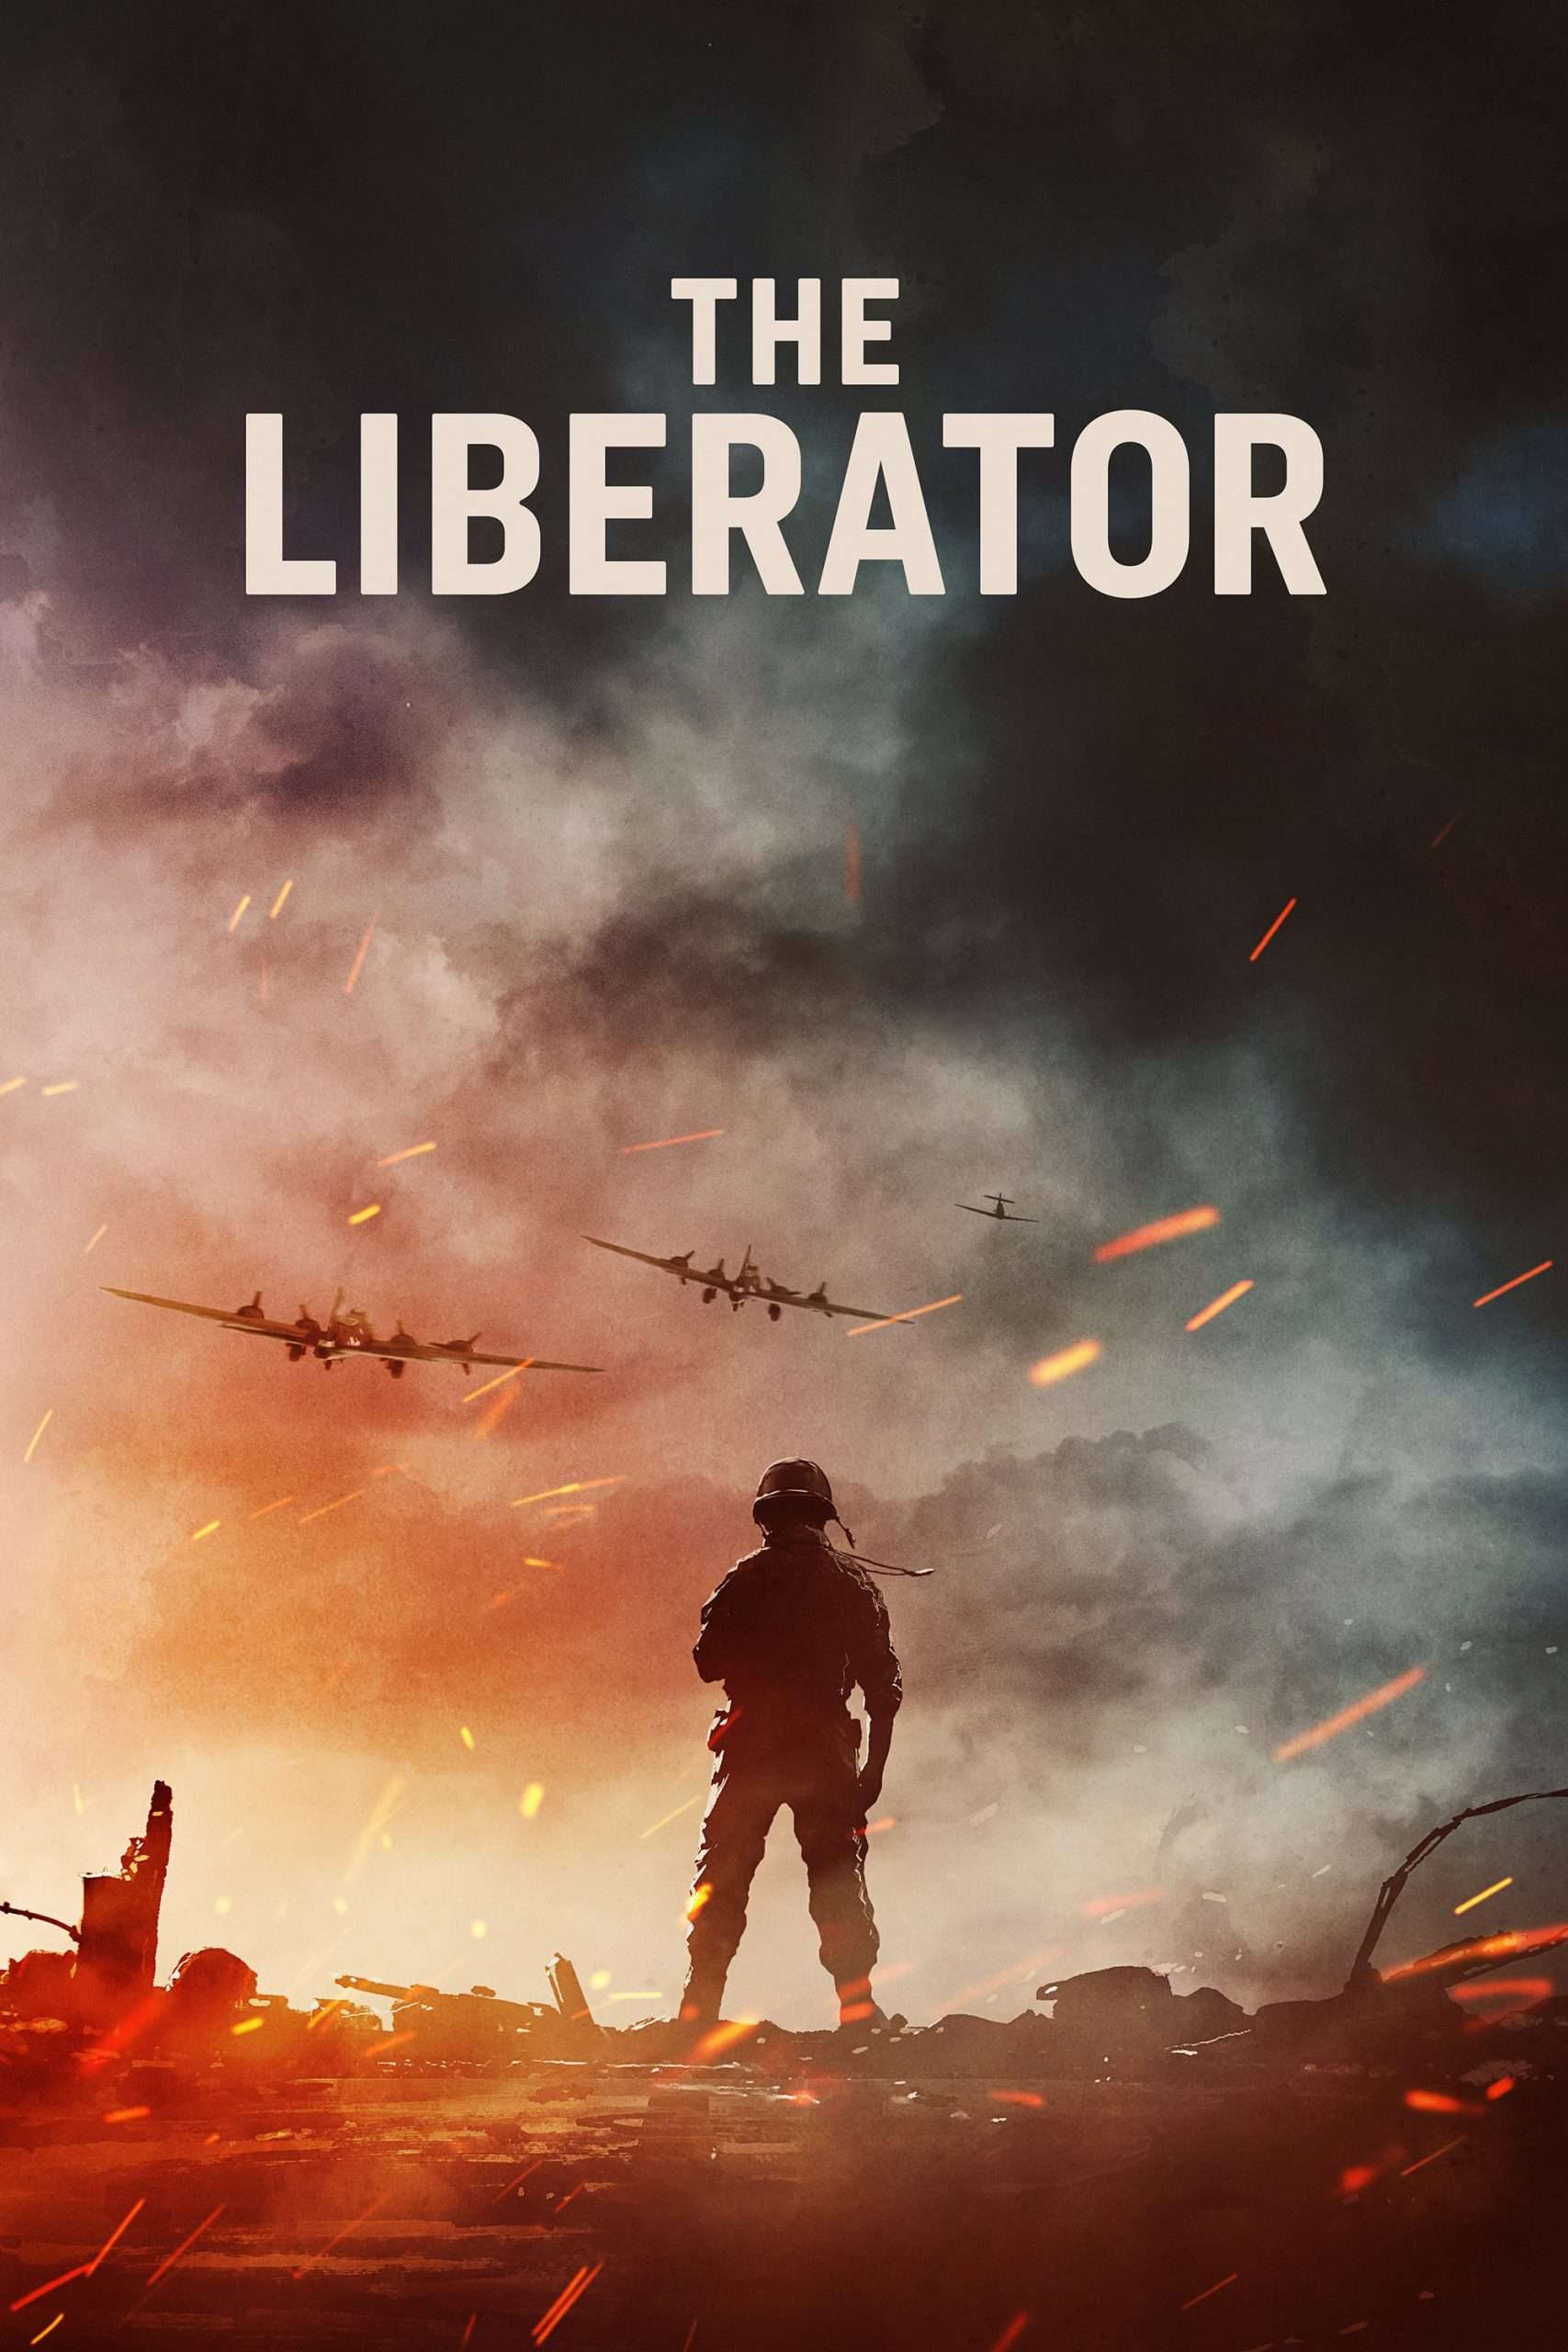 The Liberator Season 1 Episode 3 Subtitle (English Srt) Download